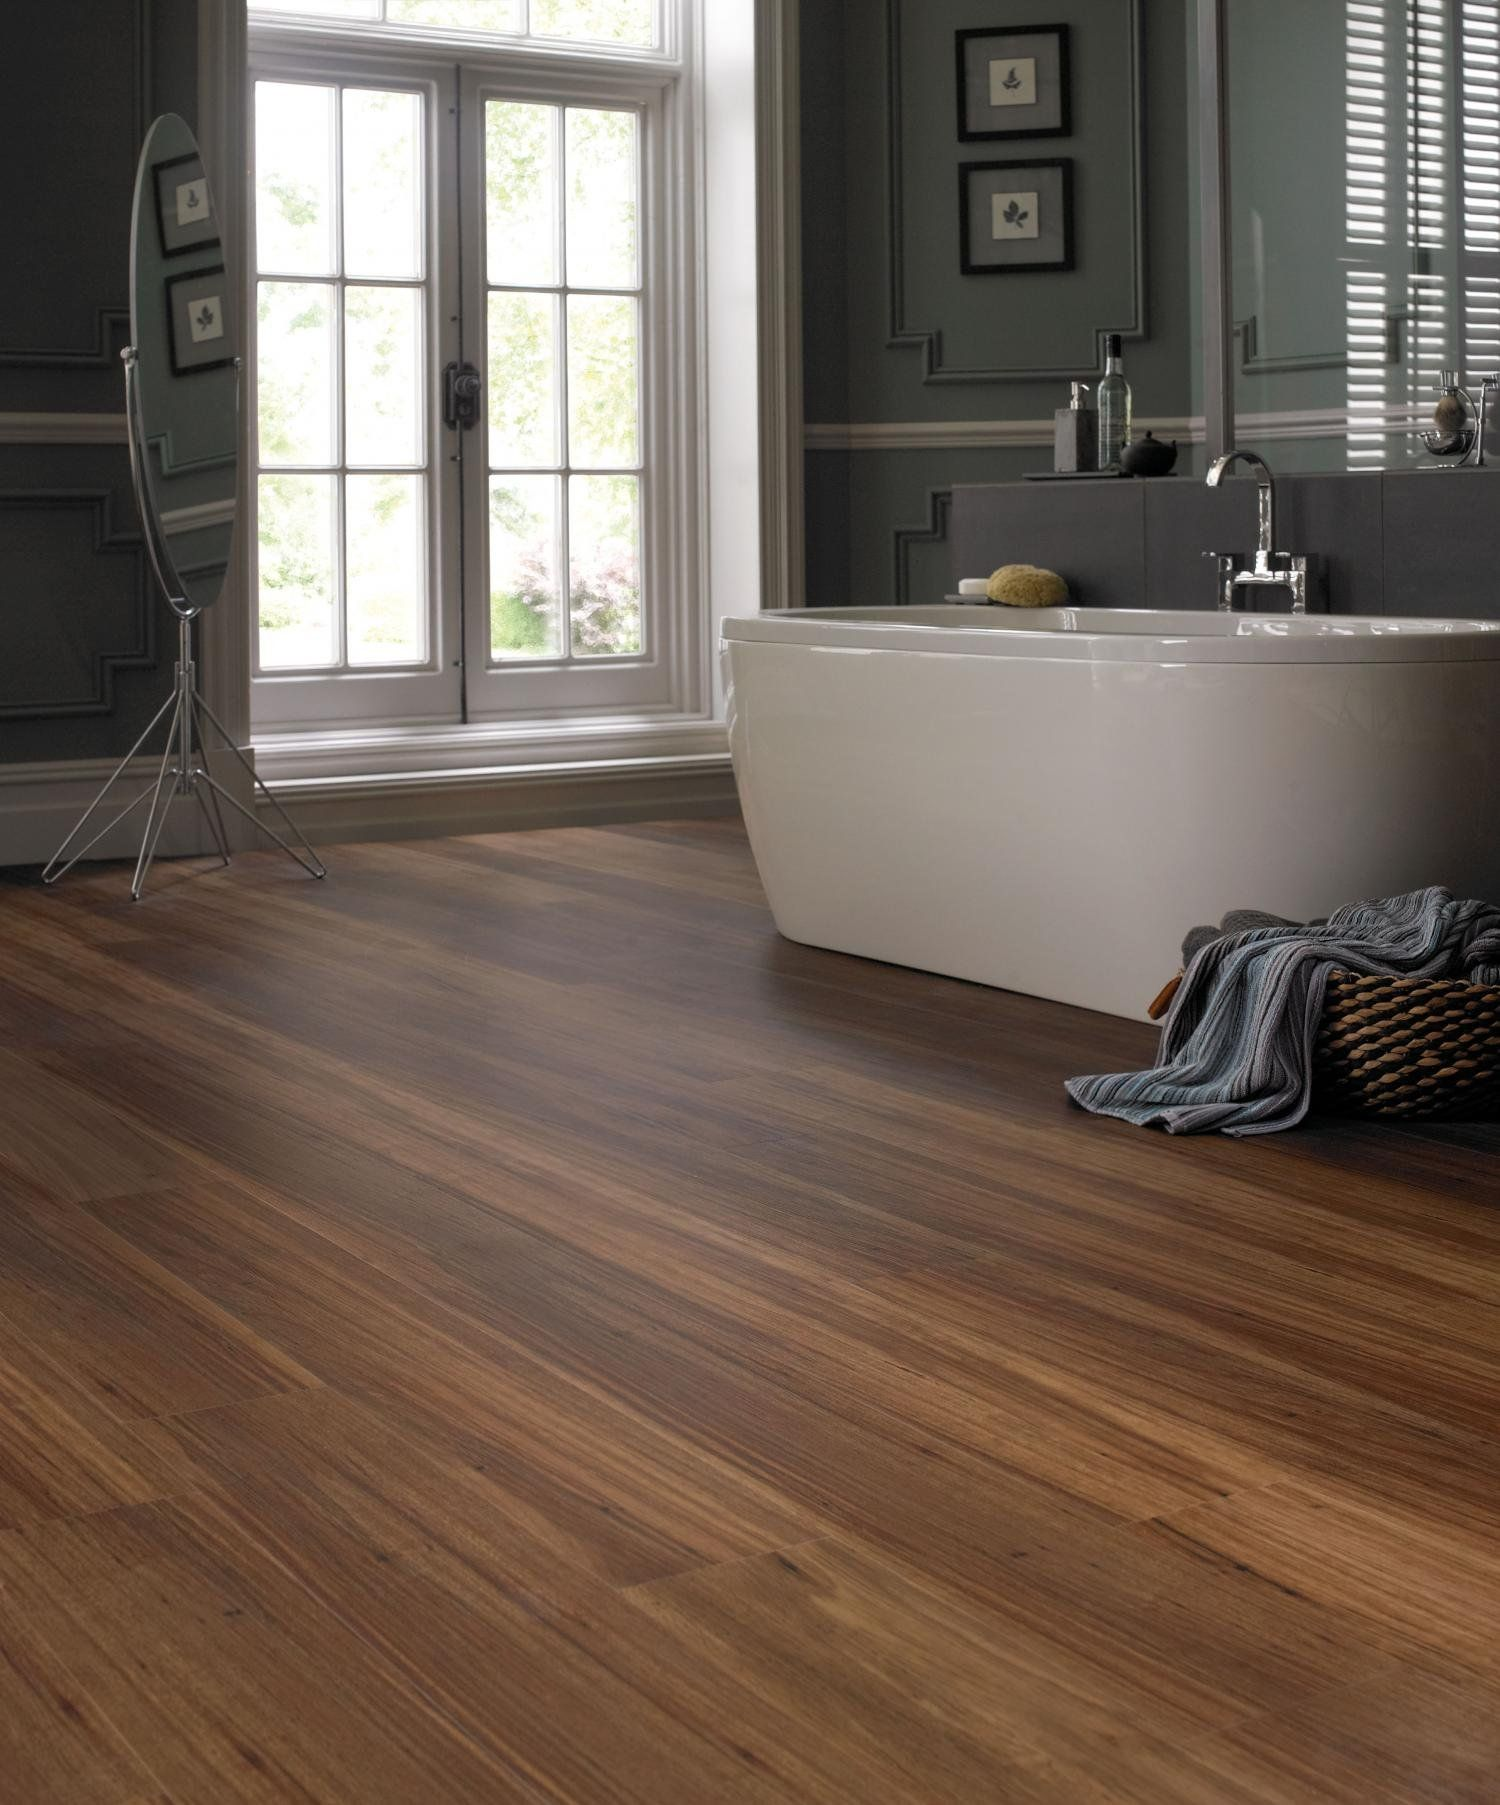 Spectacular Wood Look Tile Flooring Bathroom Design With